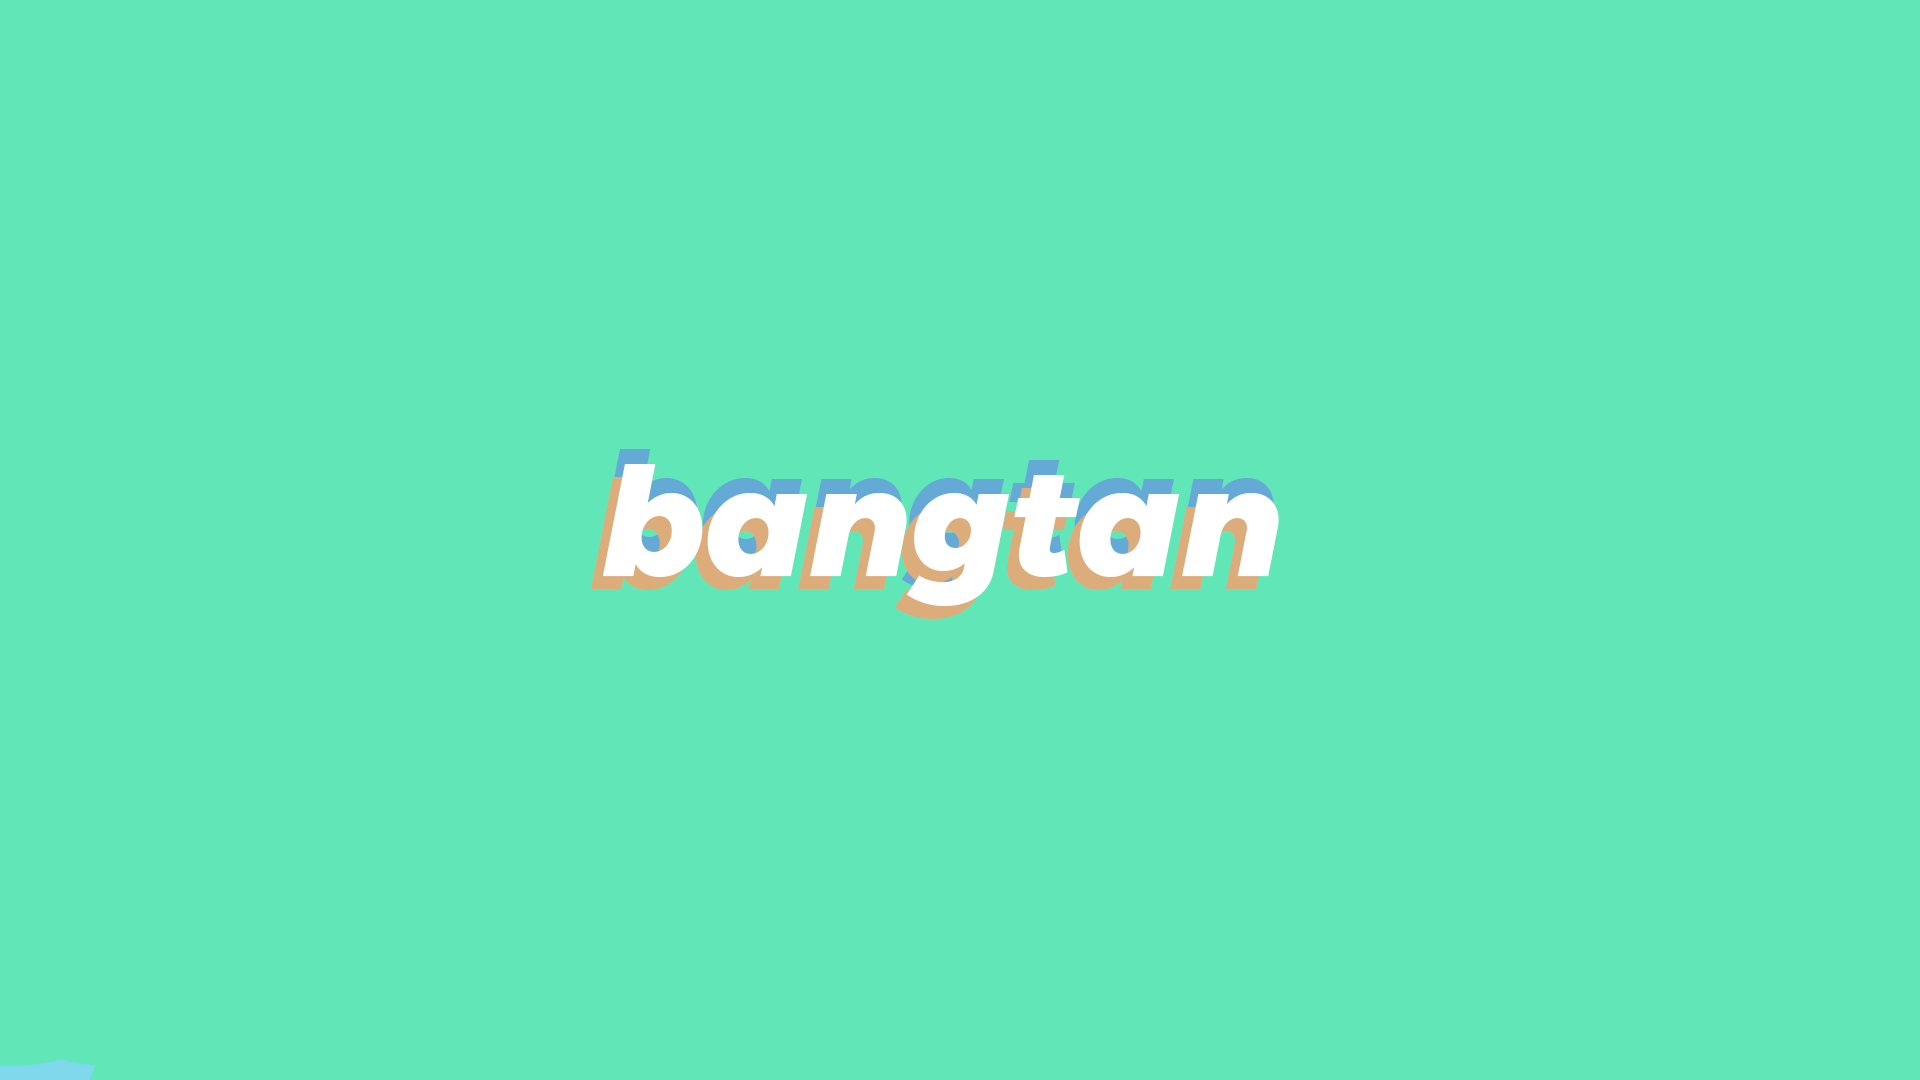 bts bangtan mint minimalist desktop wallpaper HD 1920 x 1080